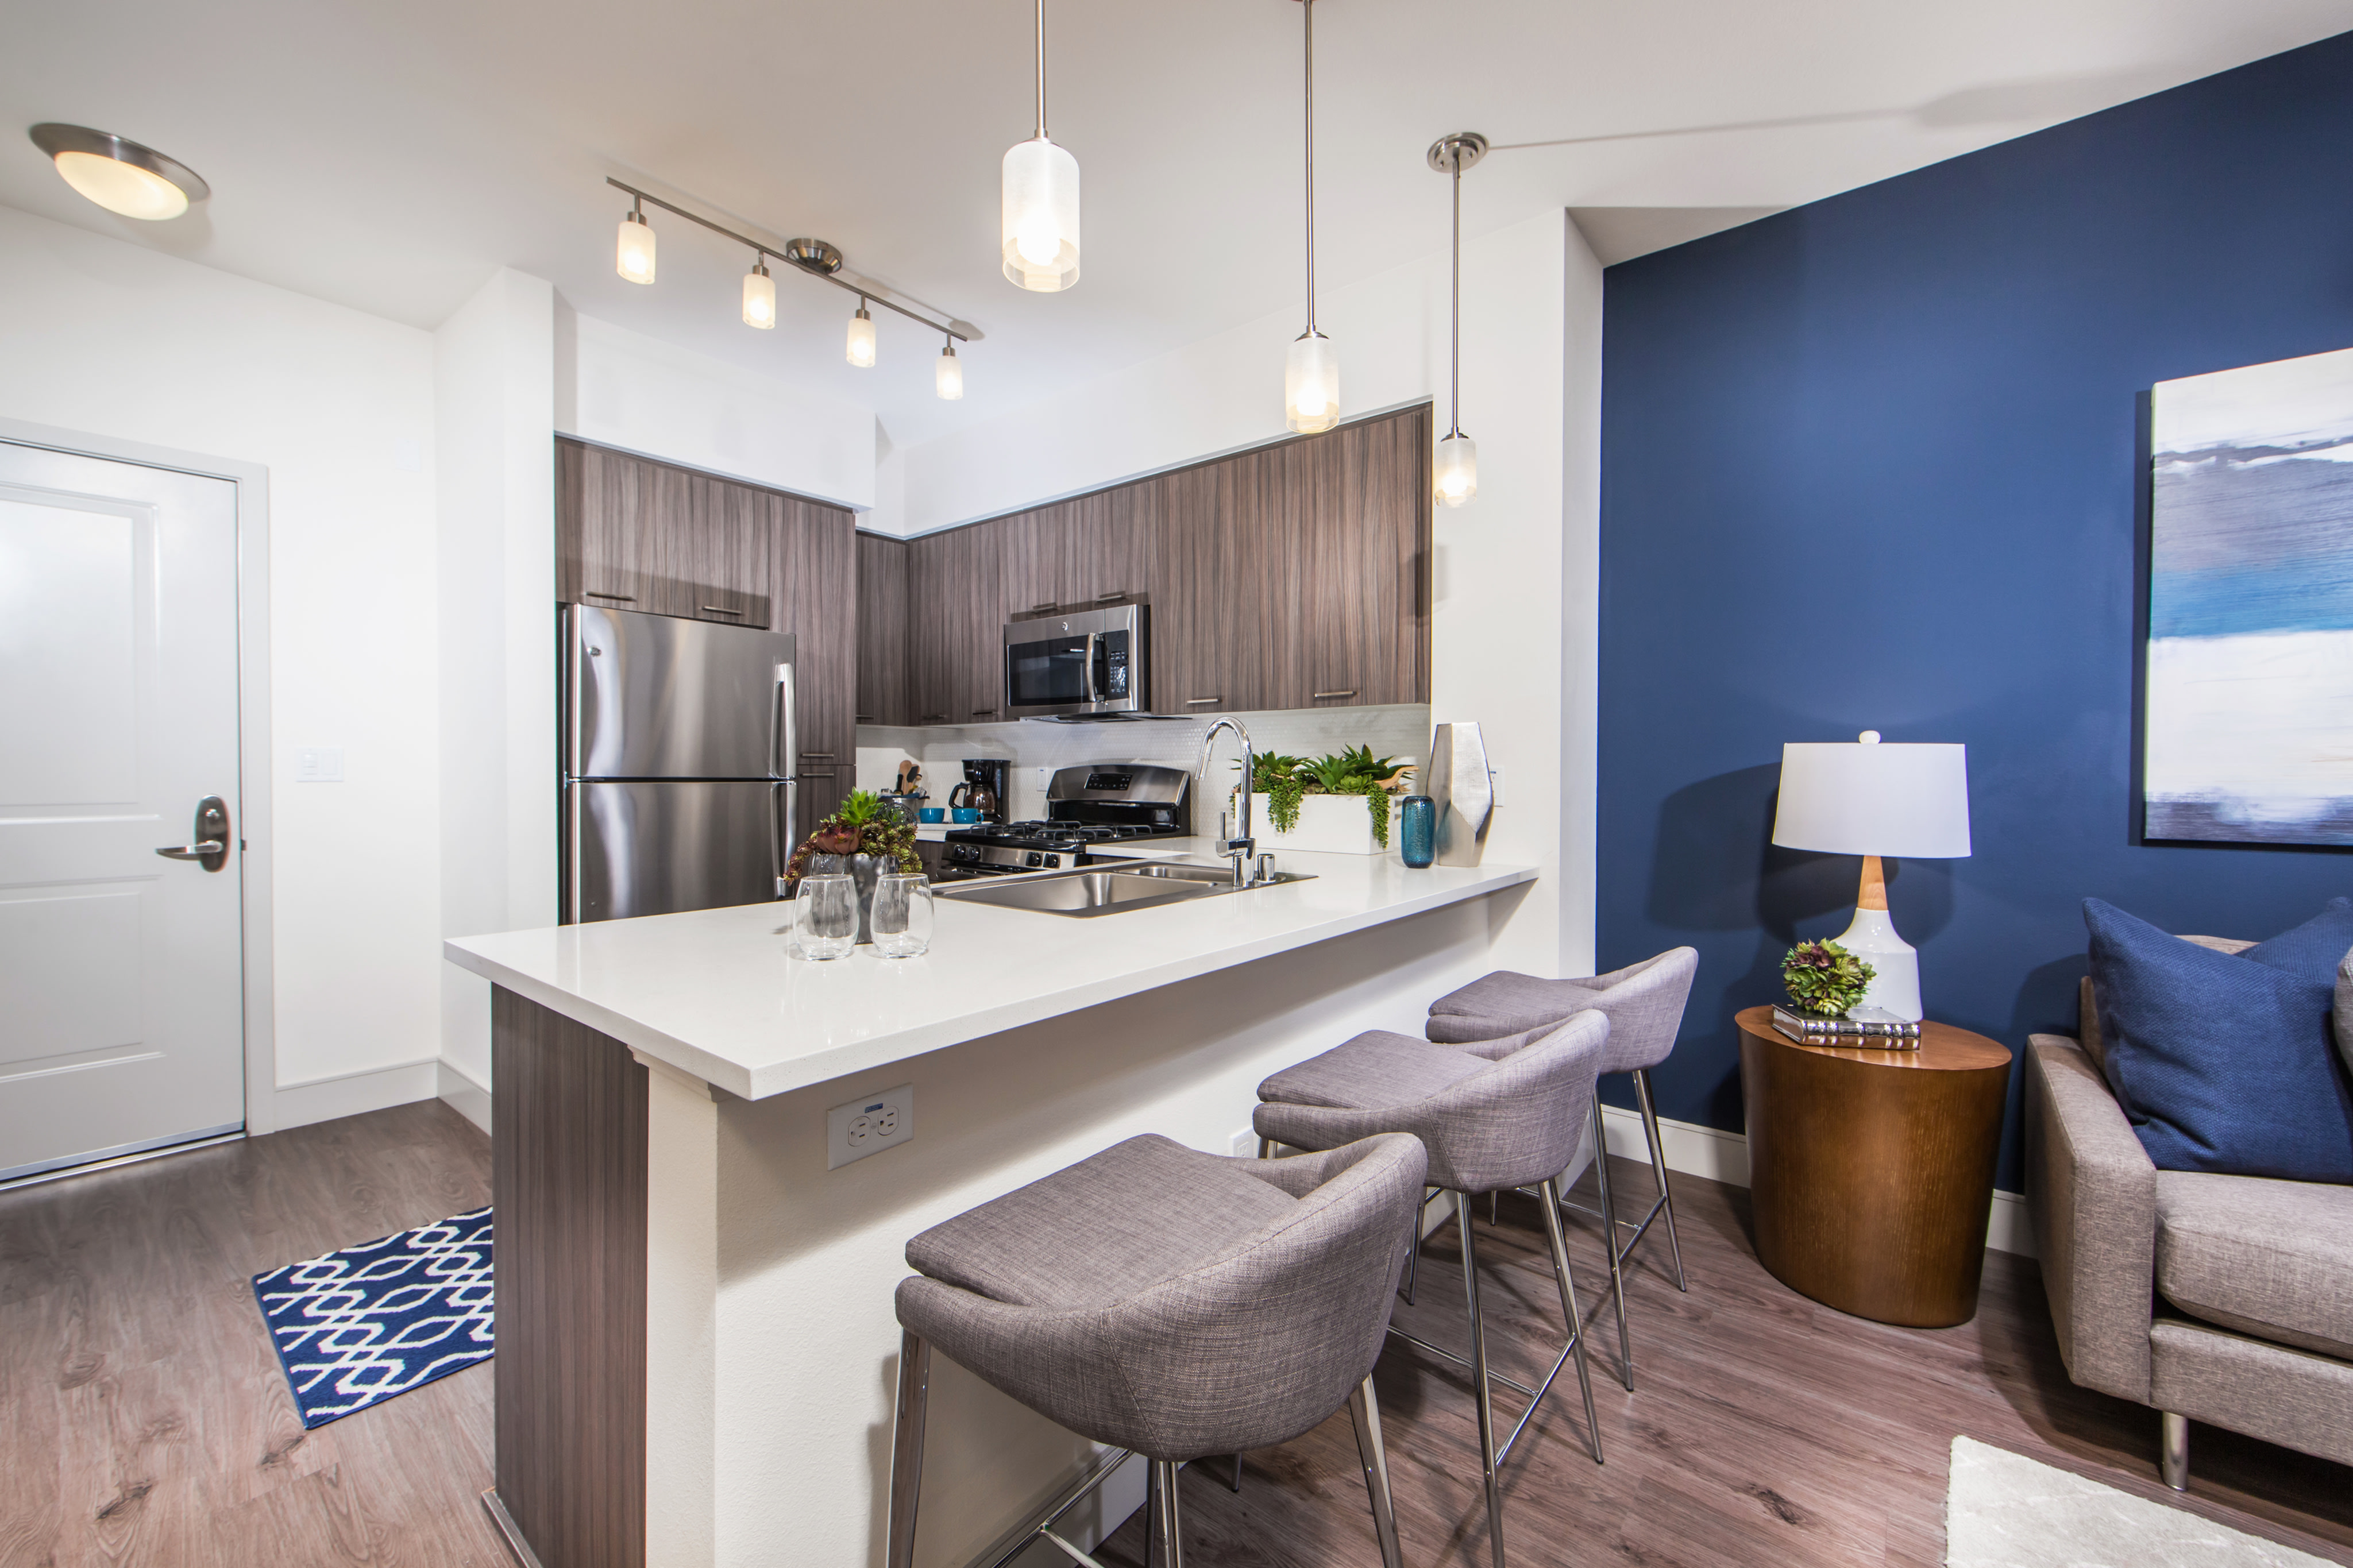 20 best apartments in lawndale from $975 (with pics)!